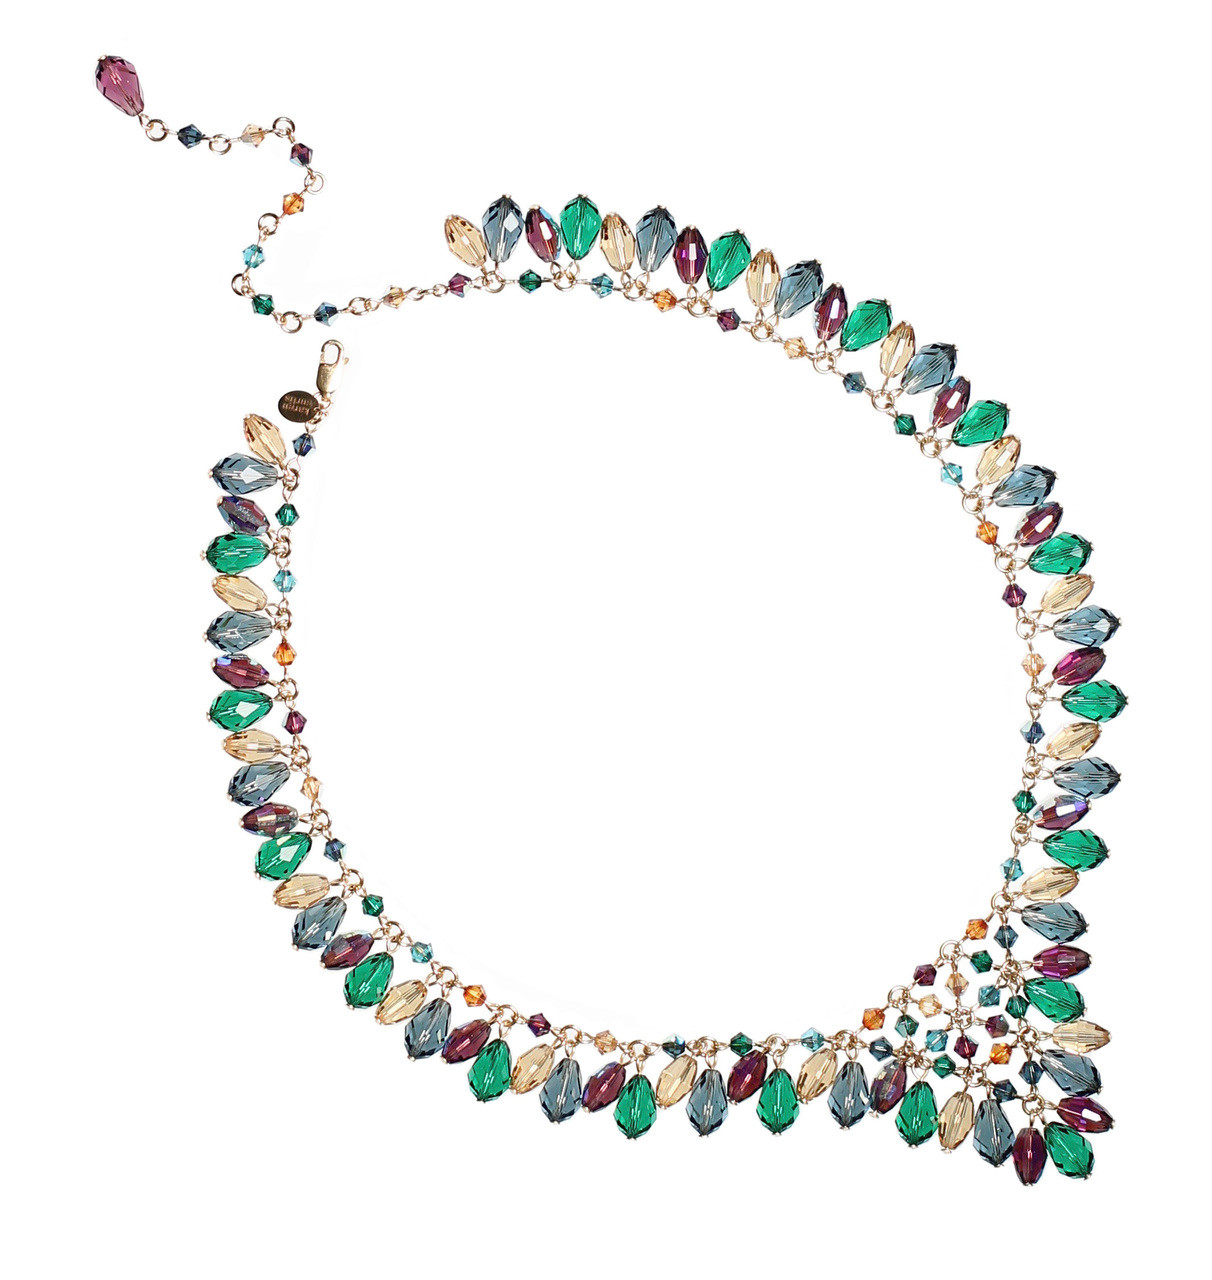 86239fb2b05828 V shaped necklace with blue and green crystal drops • 14K gold ...